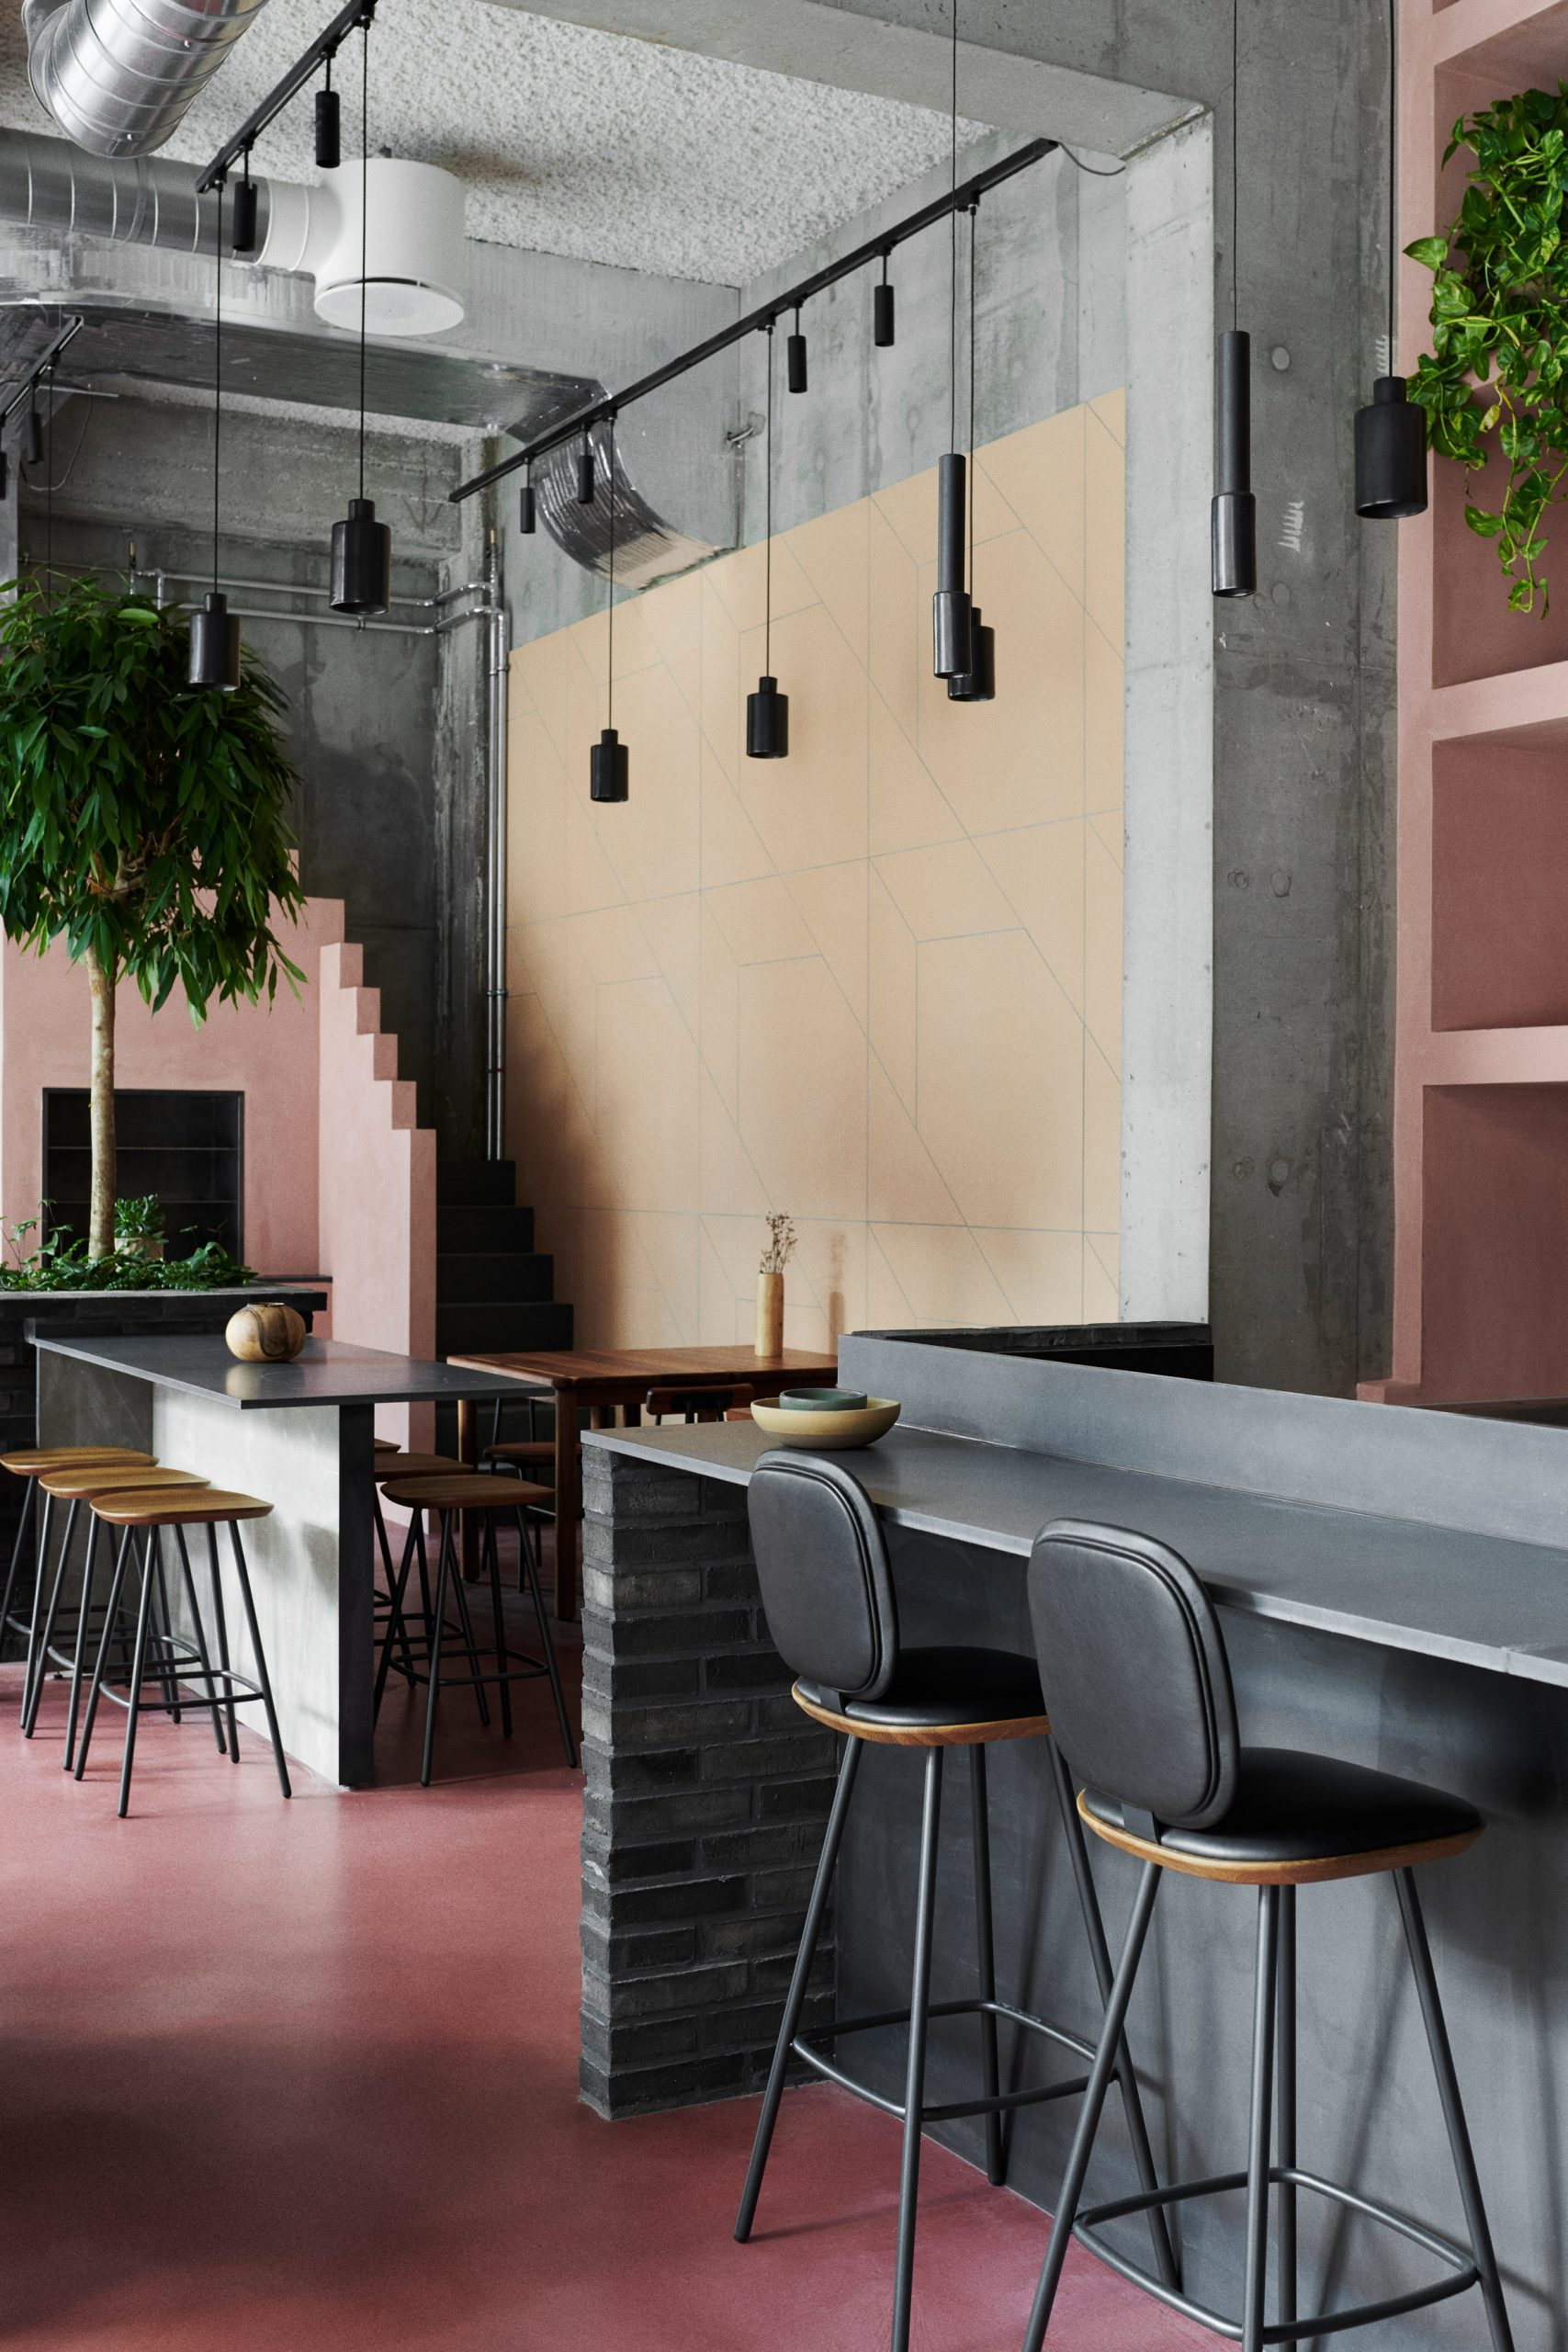 Shades of pink and yellow at Hija de Sanchez Cantina by OEO Studio